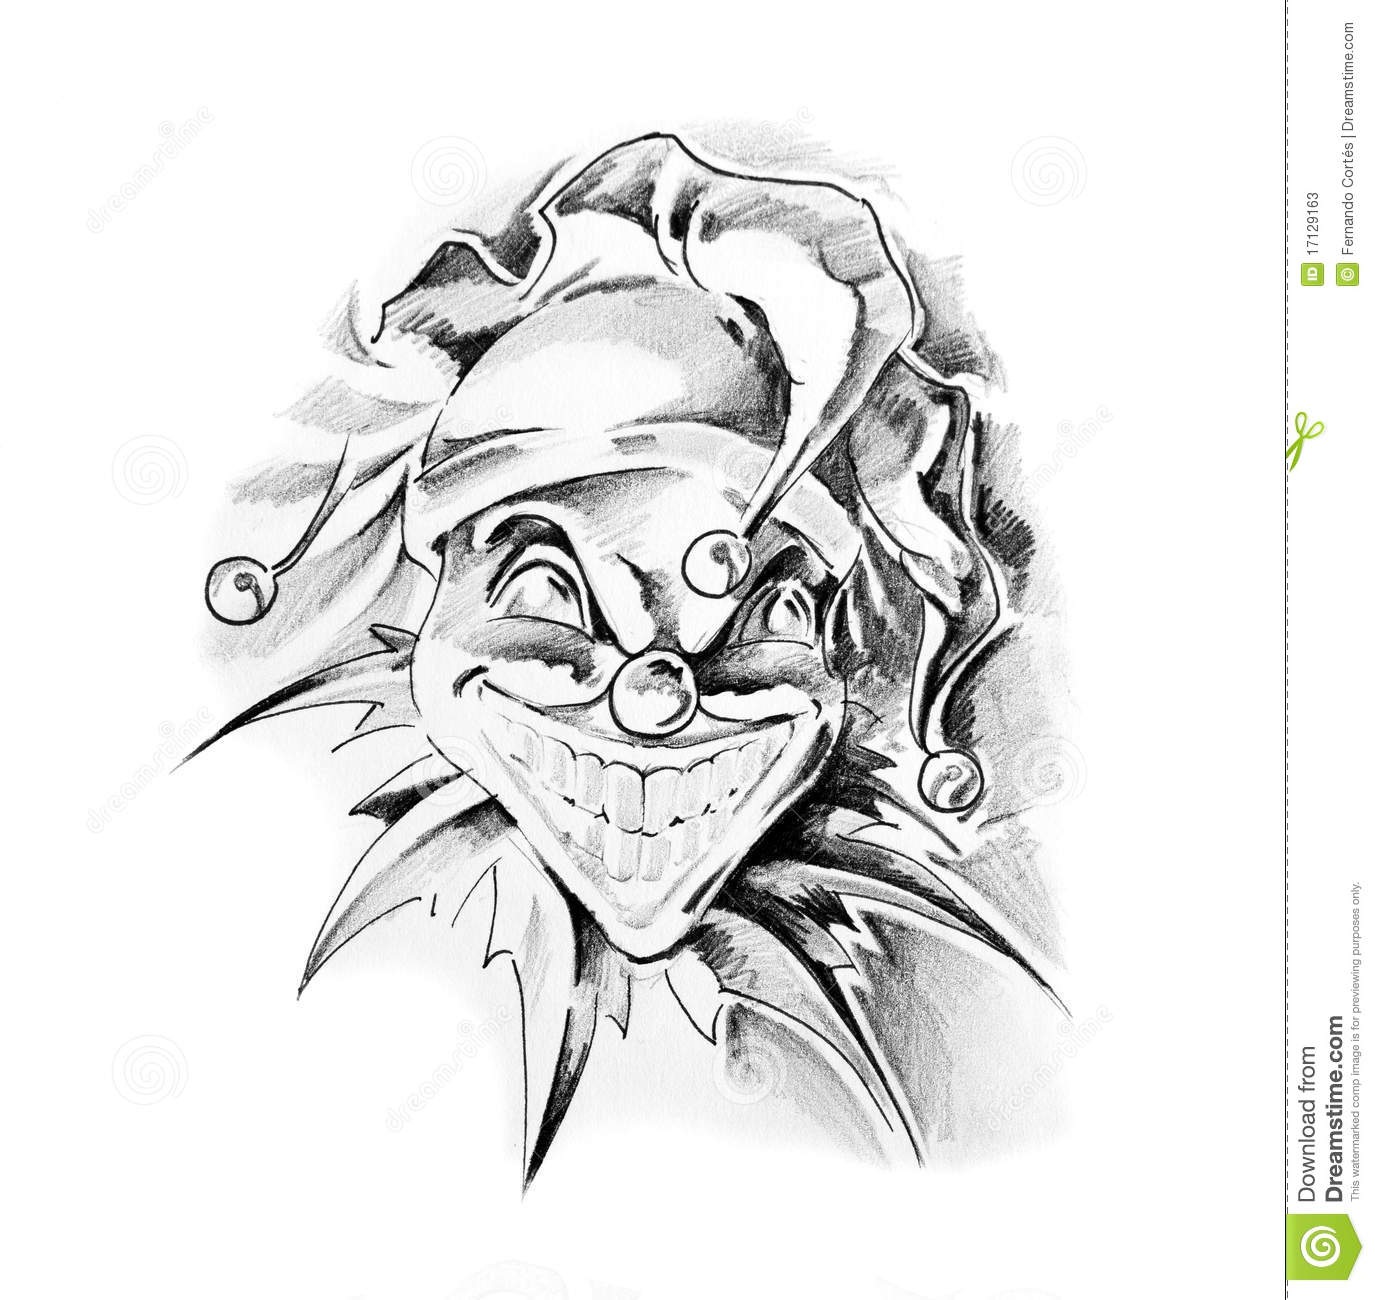 sketch of tattoo art clown joker stock illustration image 17129163. Black Bedroom Furniture Sets. Home Design Ideas